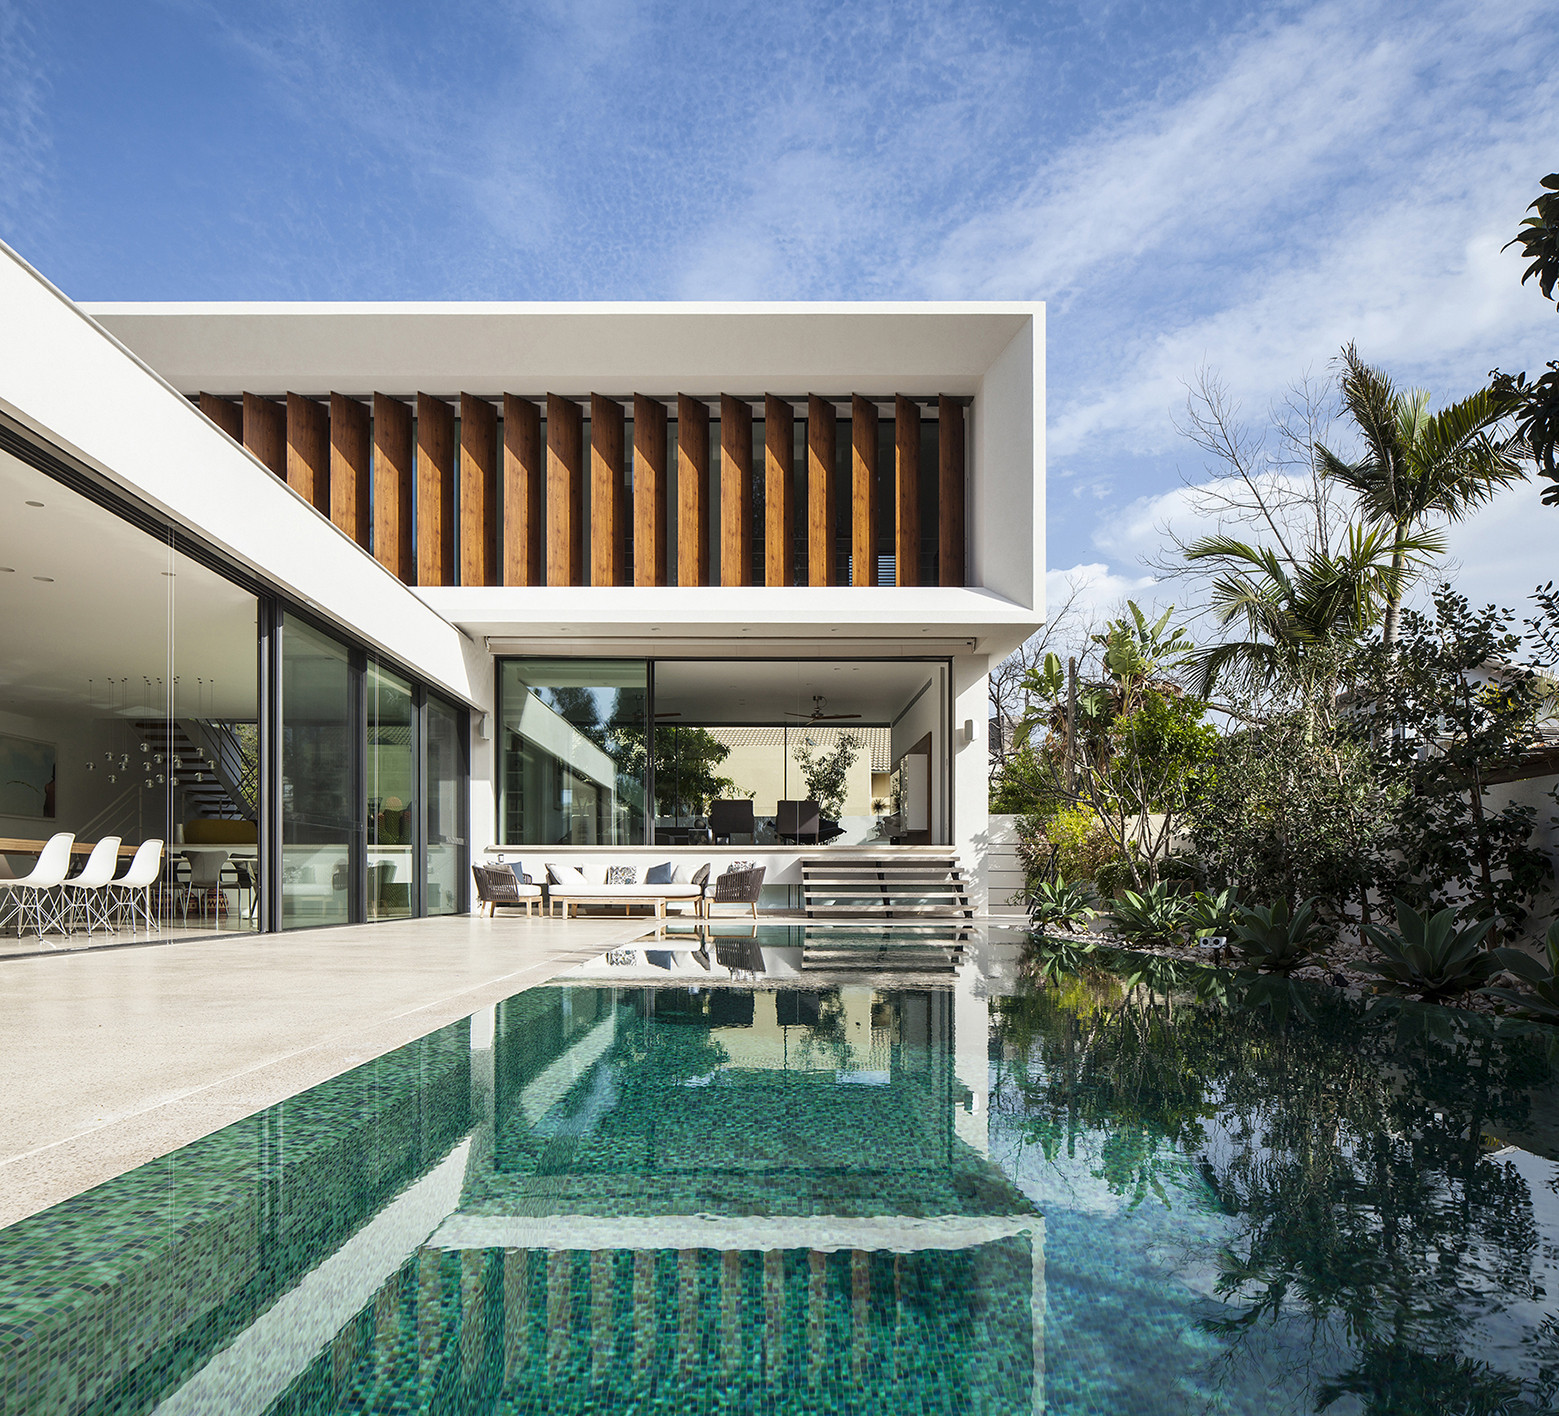 Mediterranean villa paz gersh architects archdaily for Daily hotel